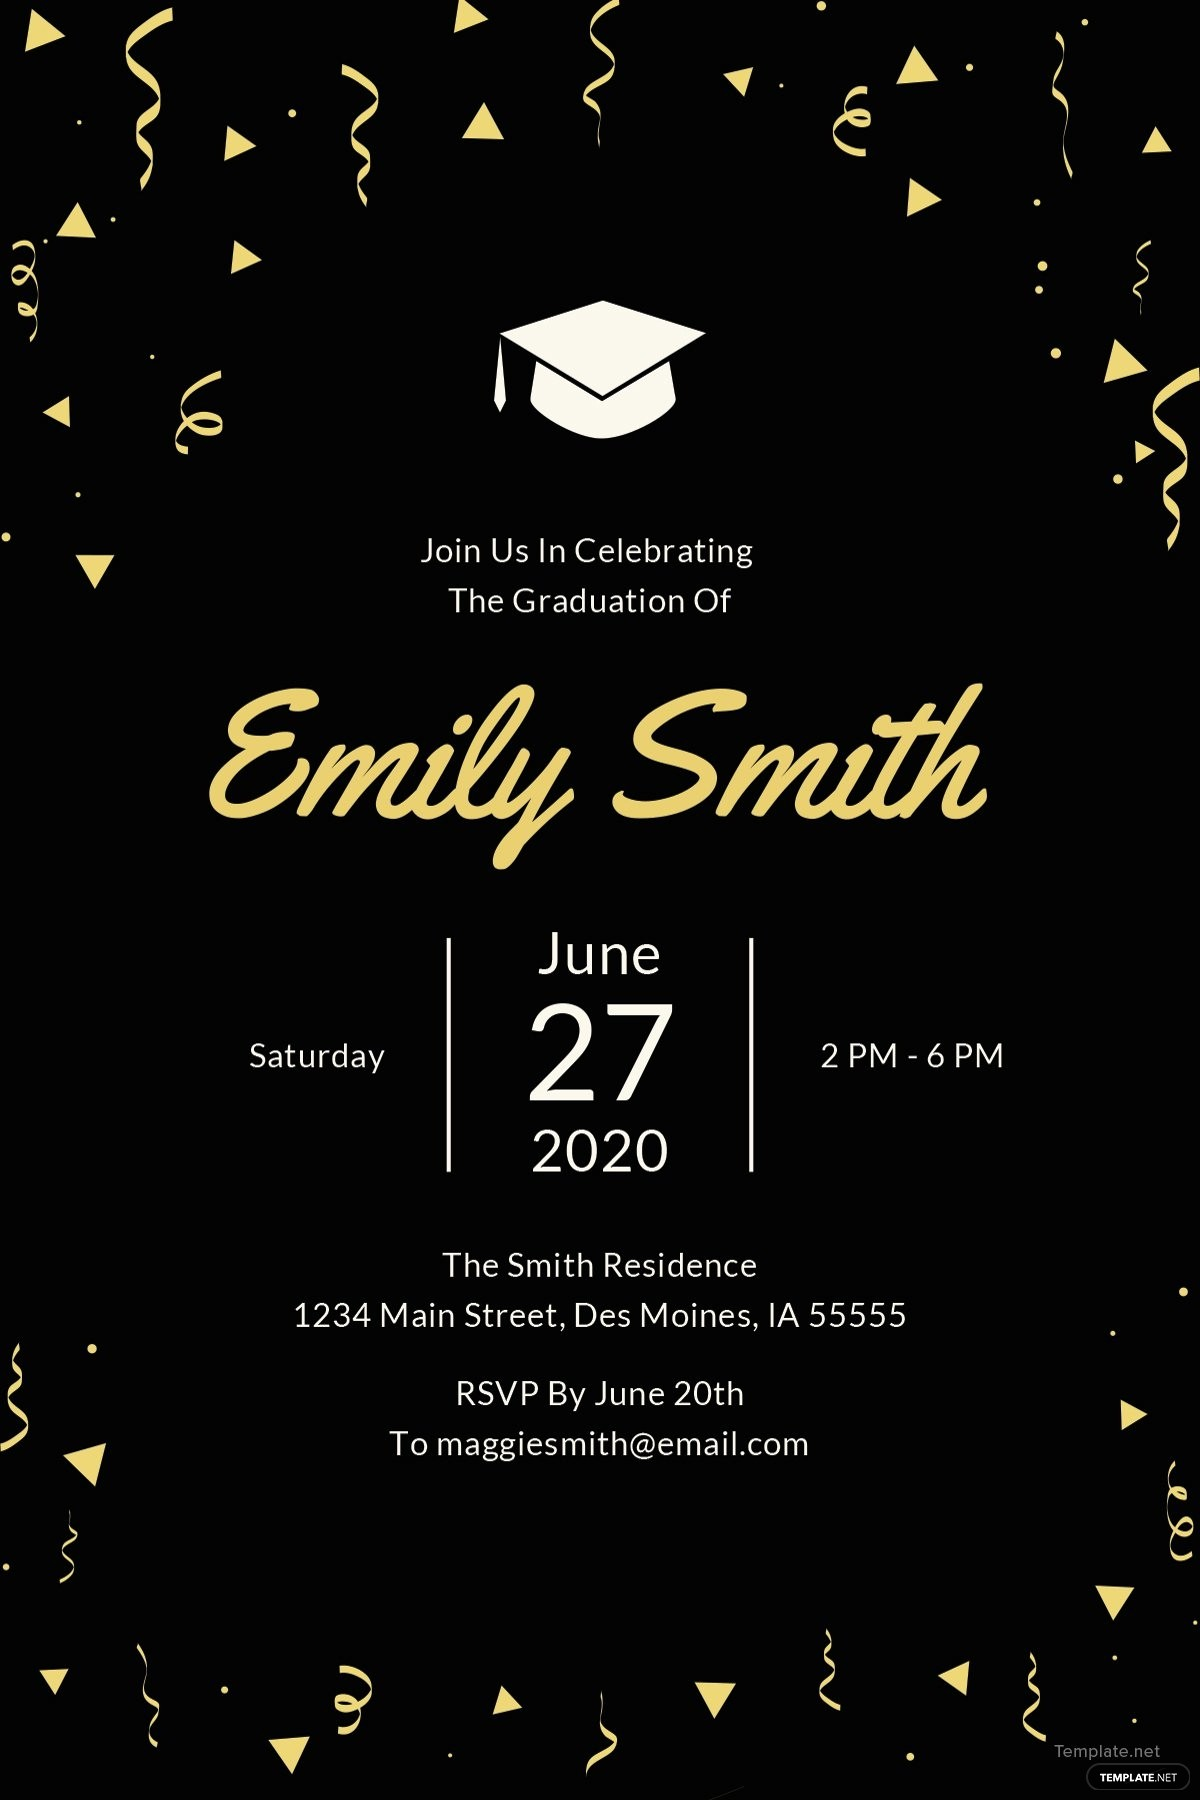 Graduation Party Invitation Template Word Beautiful Free Graduation Invitation Template In Microsoft Word